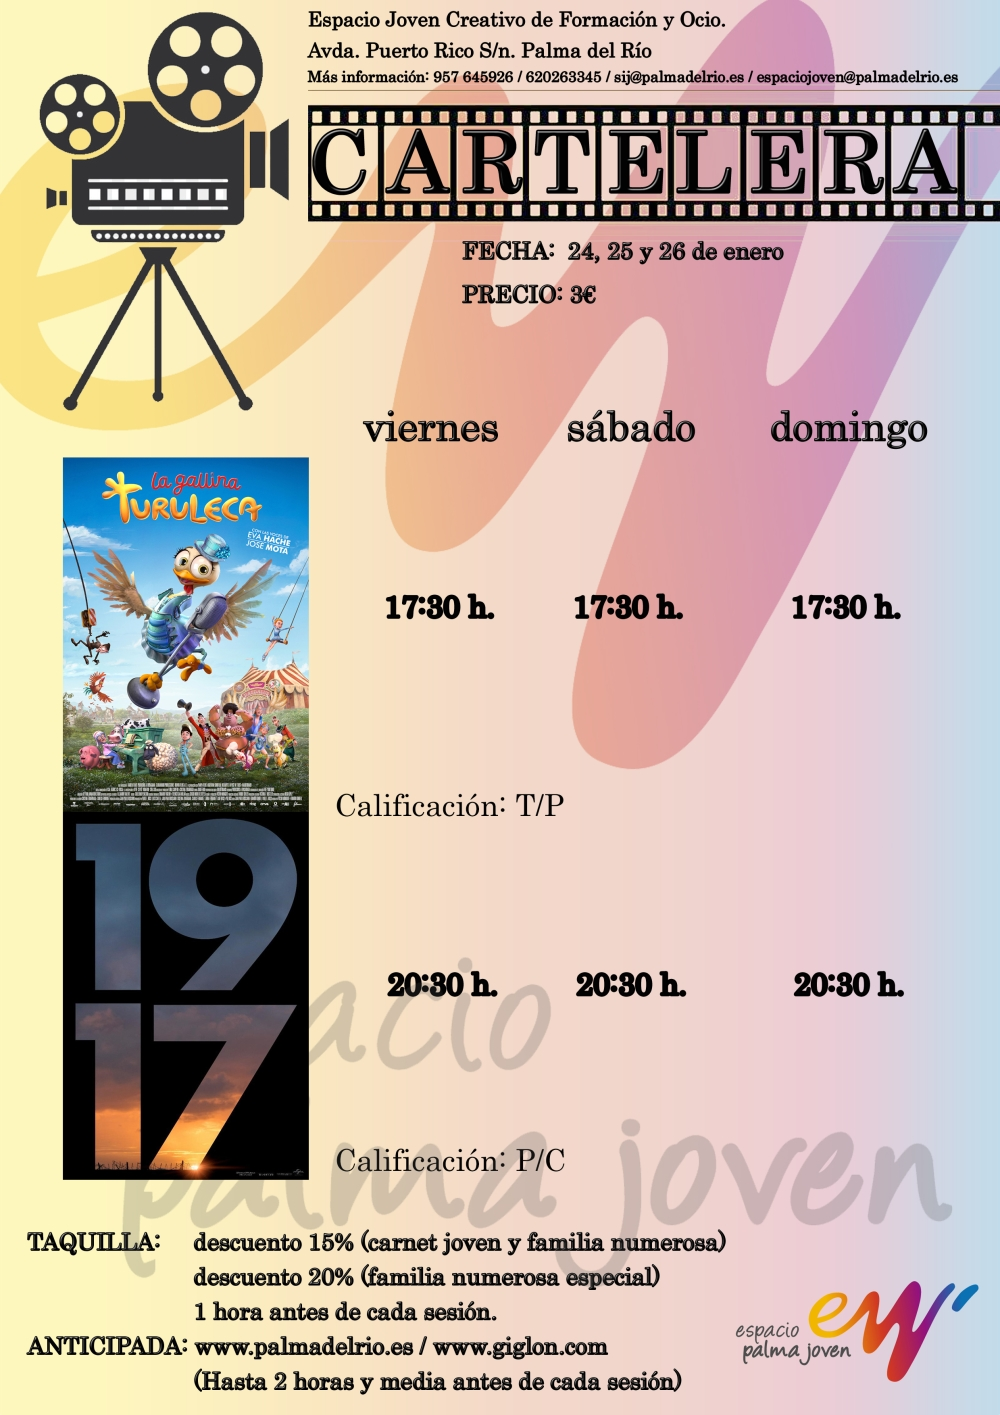 https://www.palmadelrio.es/sites/default/files/horario_cine_24_25_y_26_enero.jpg